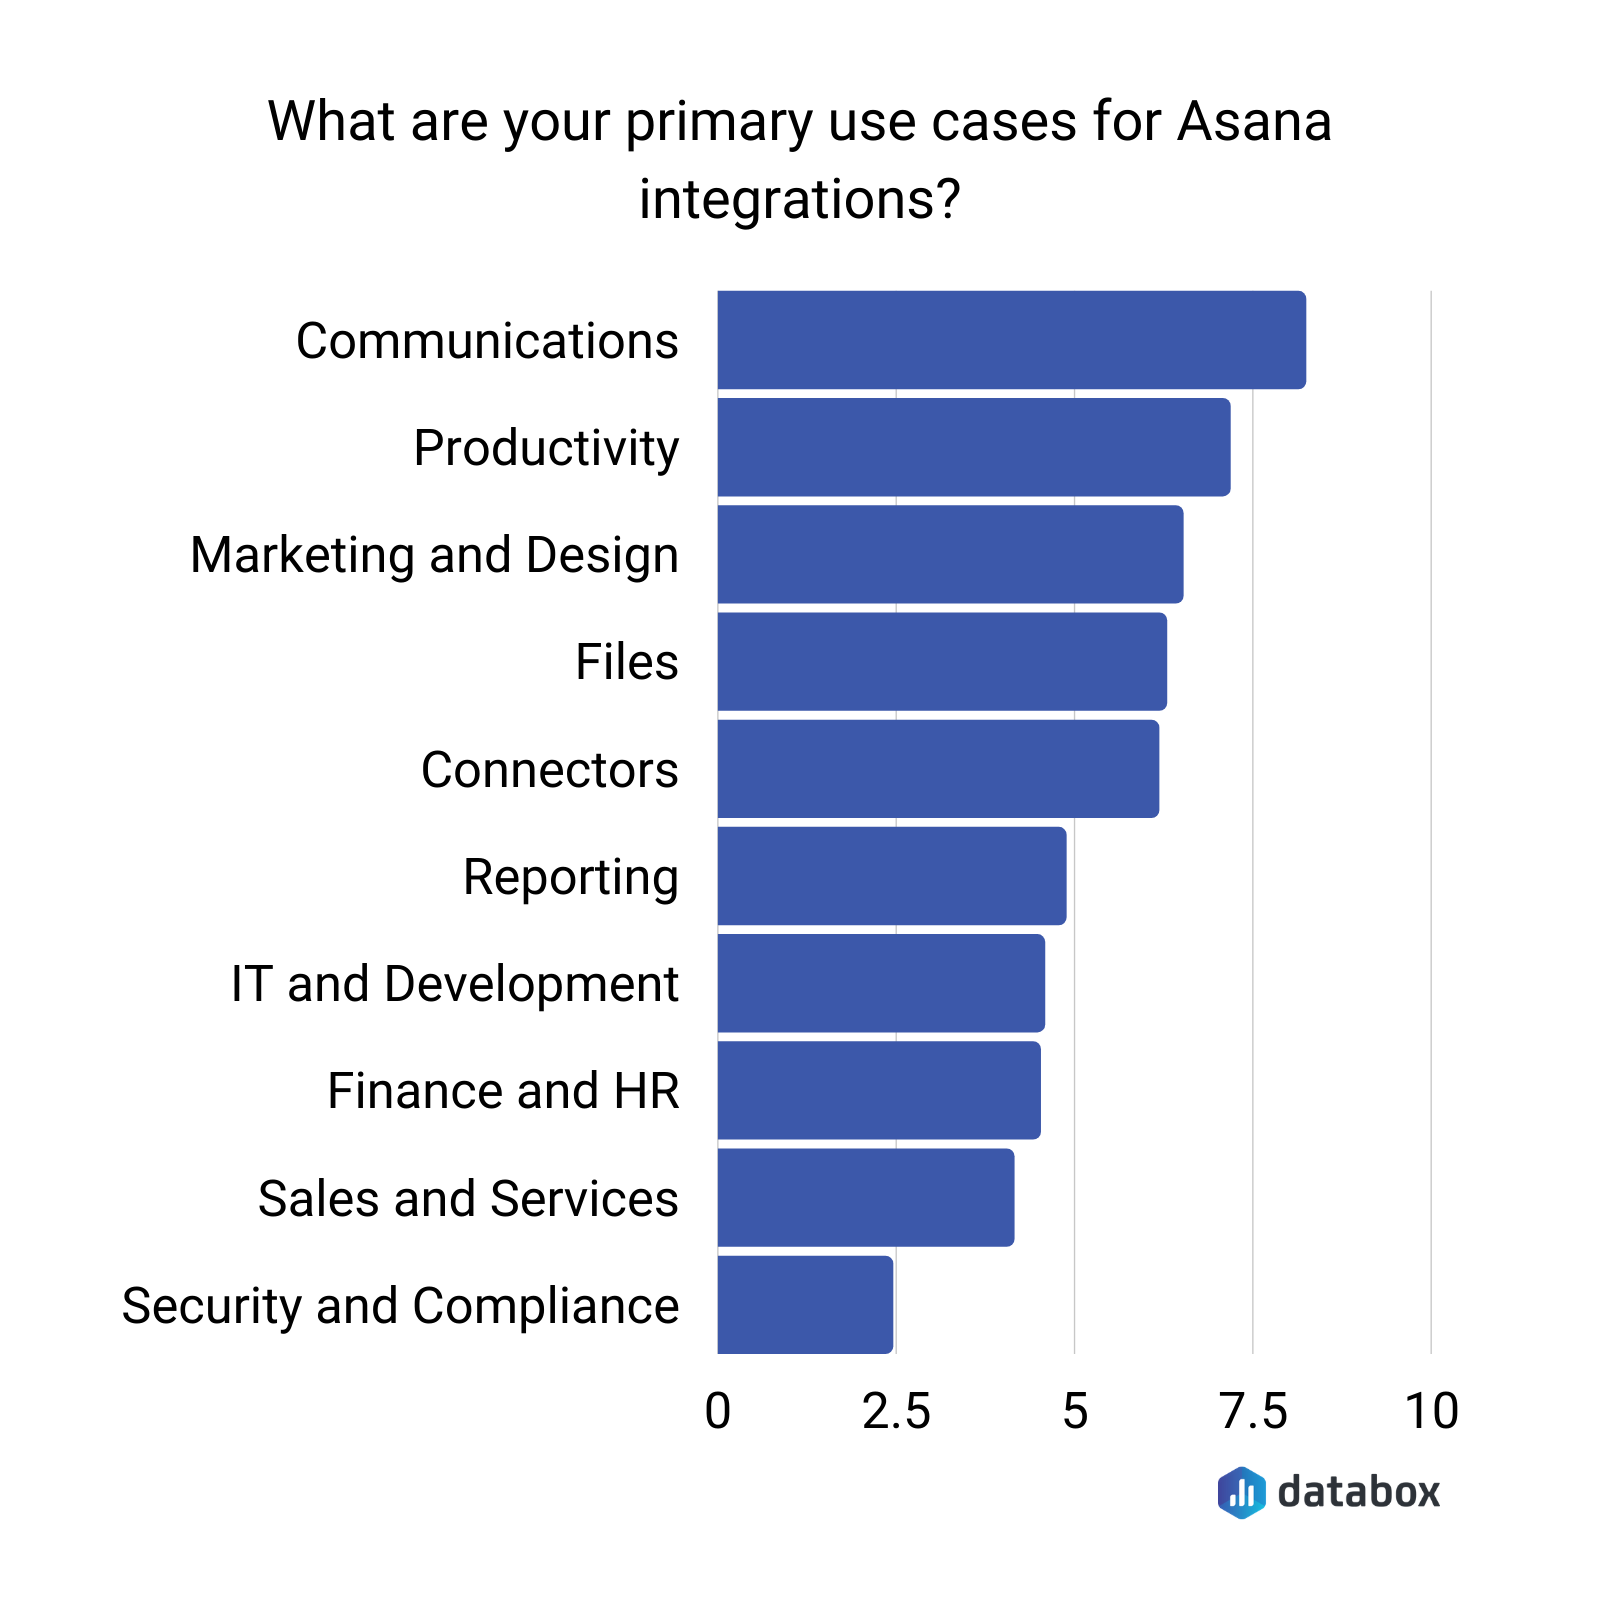 What are your primary use cases for Asana integrations?